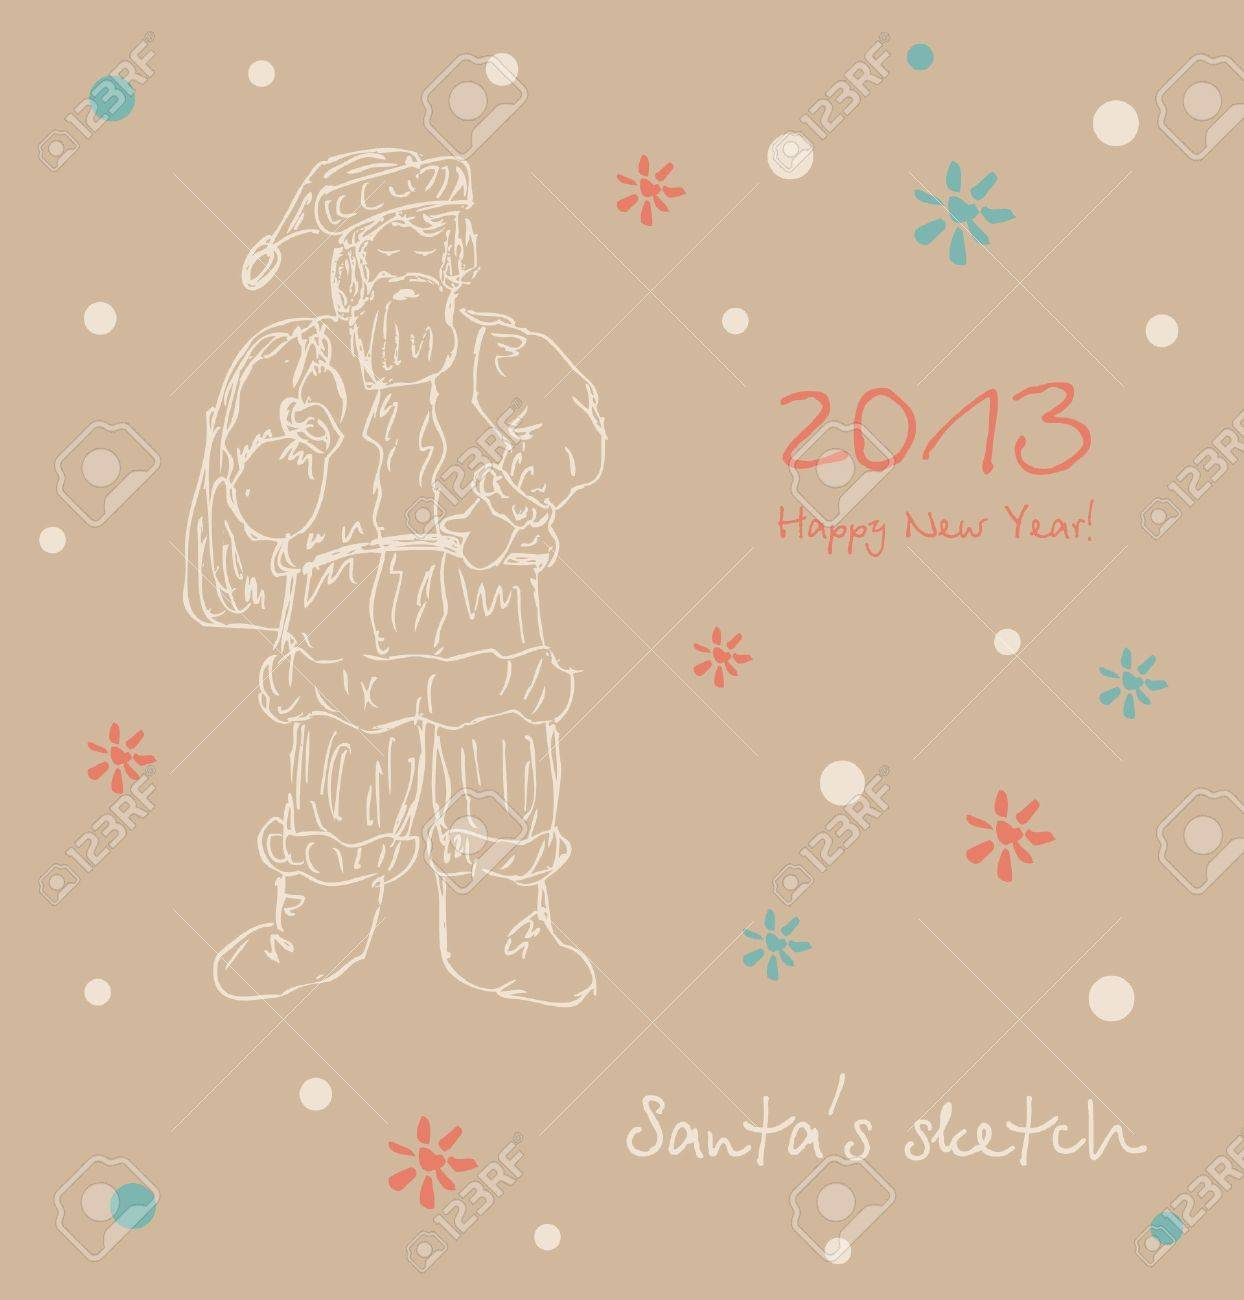 santa sketch happy new year card xmas elements for design christmas decoration stock vector 16552109